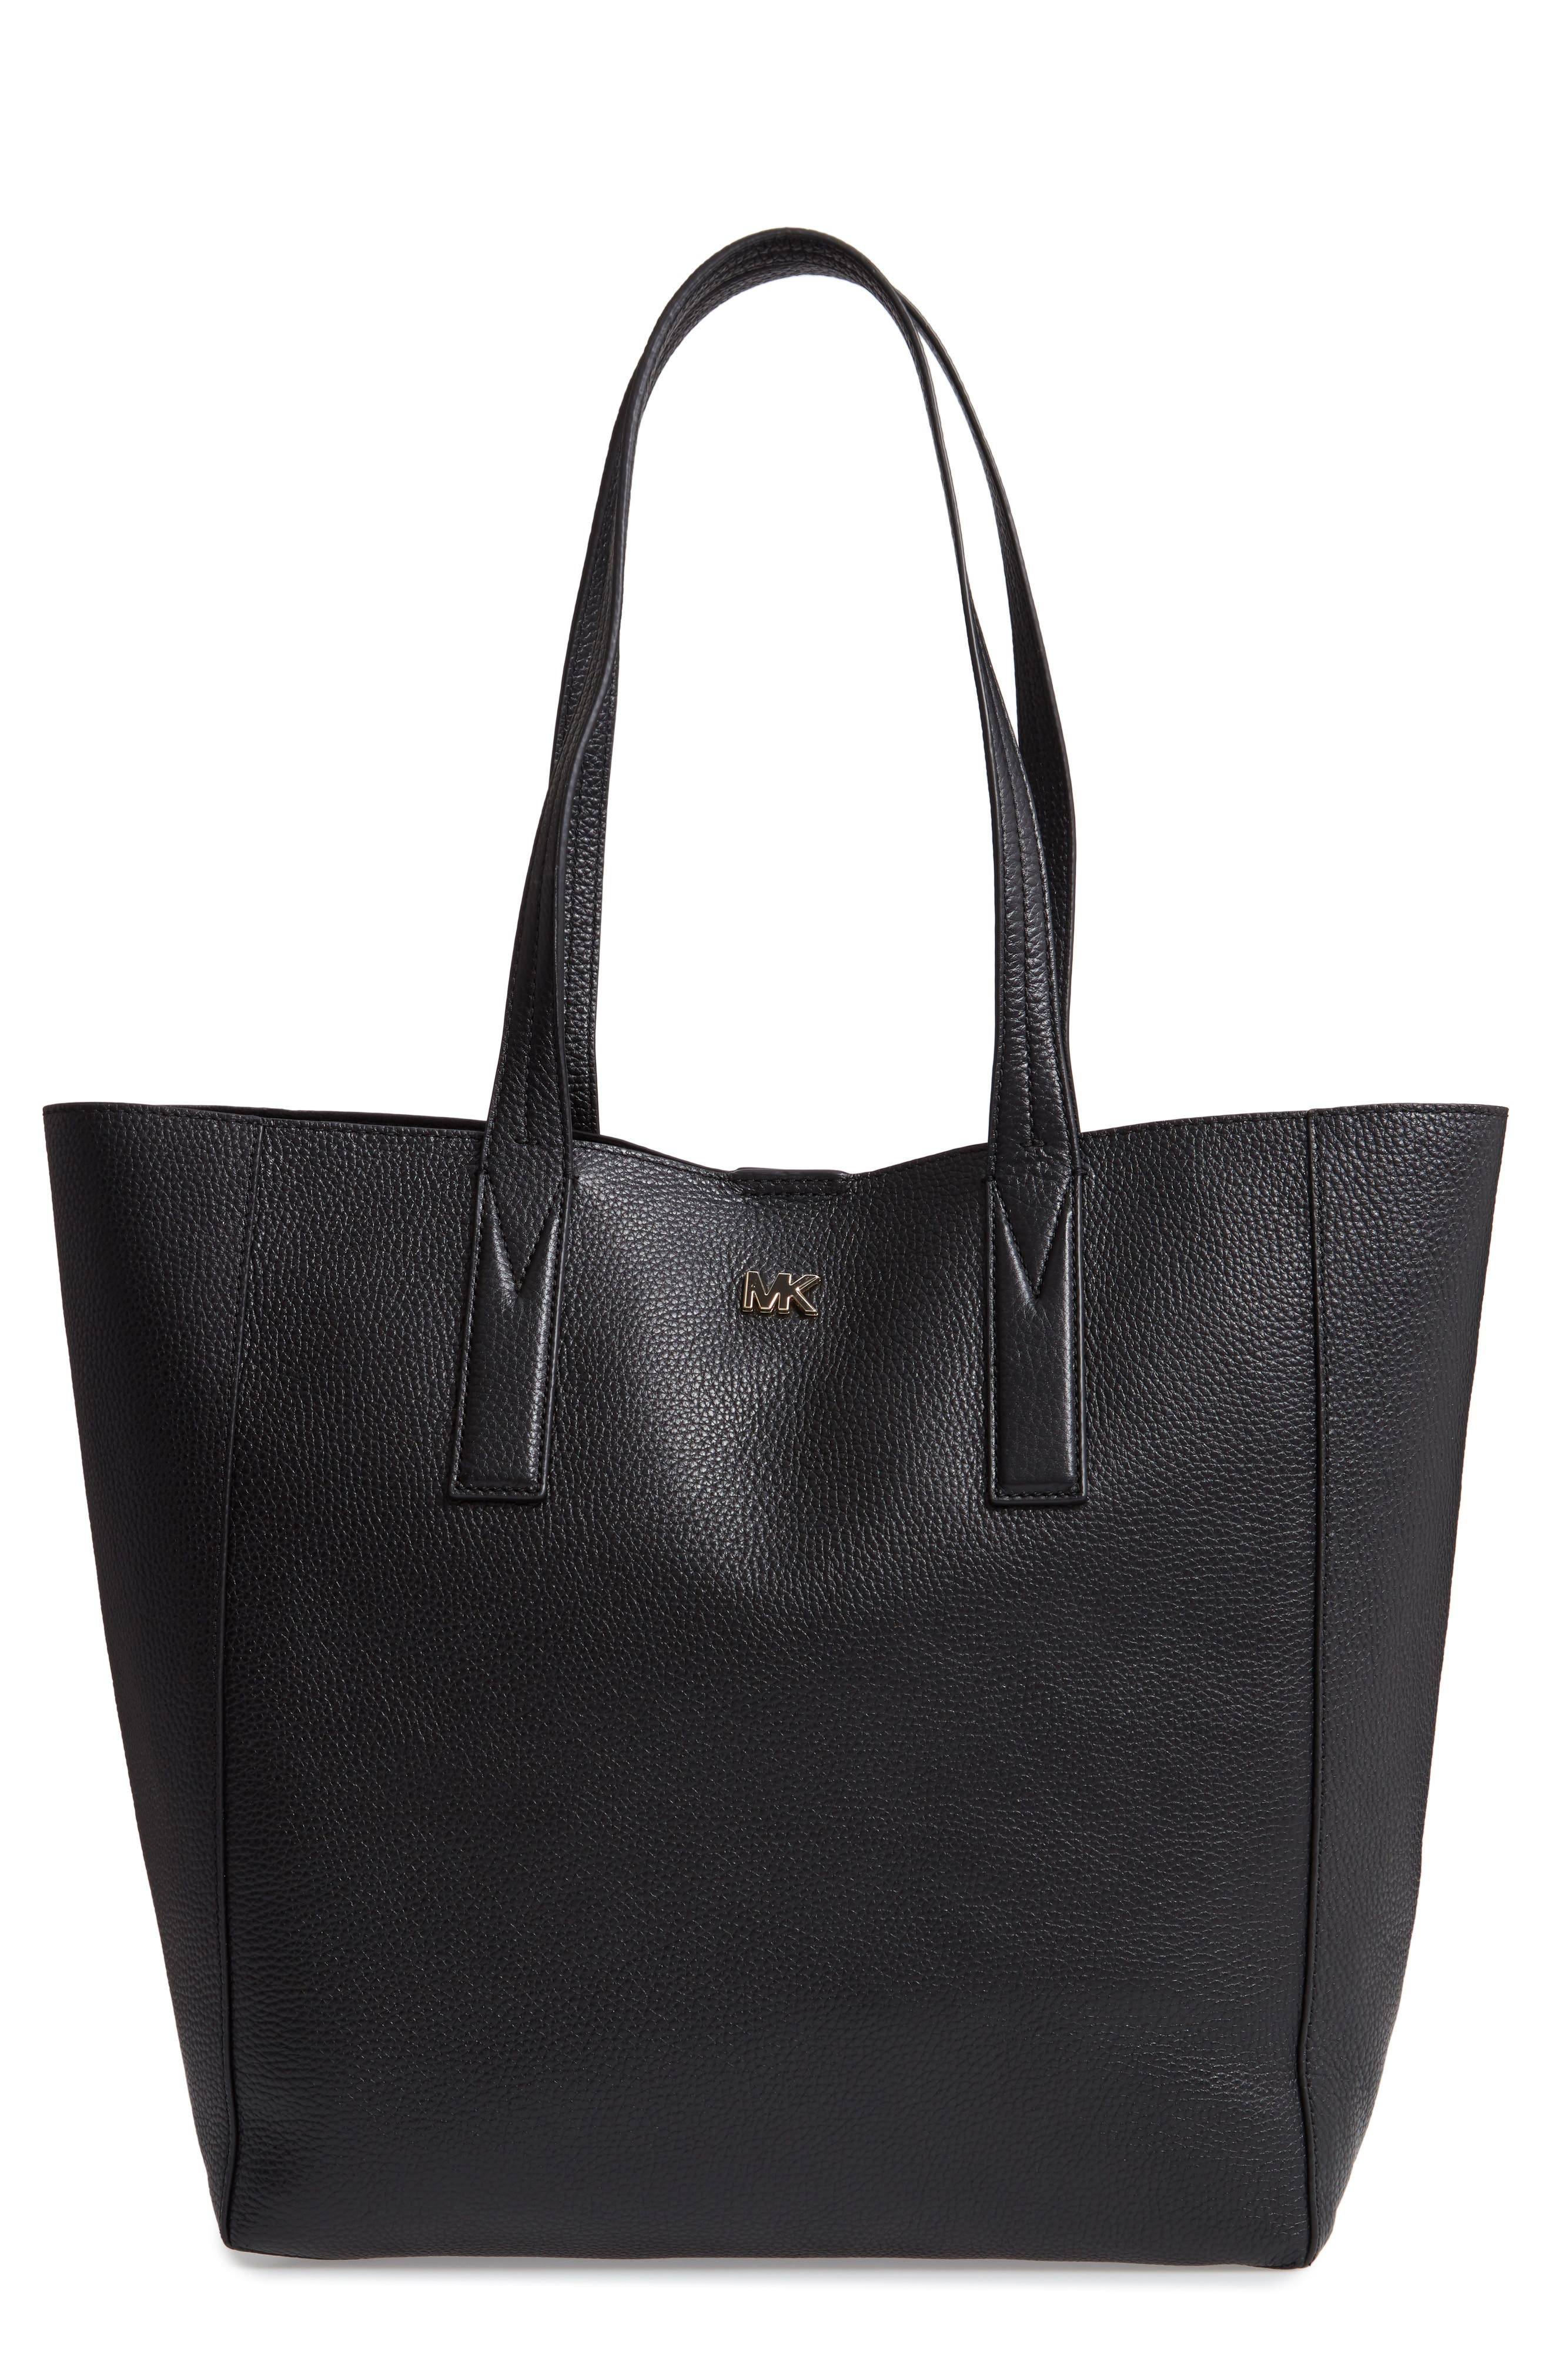 MICHAEL MICHAEL KORS Large Leather Tote, Main, color, 001